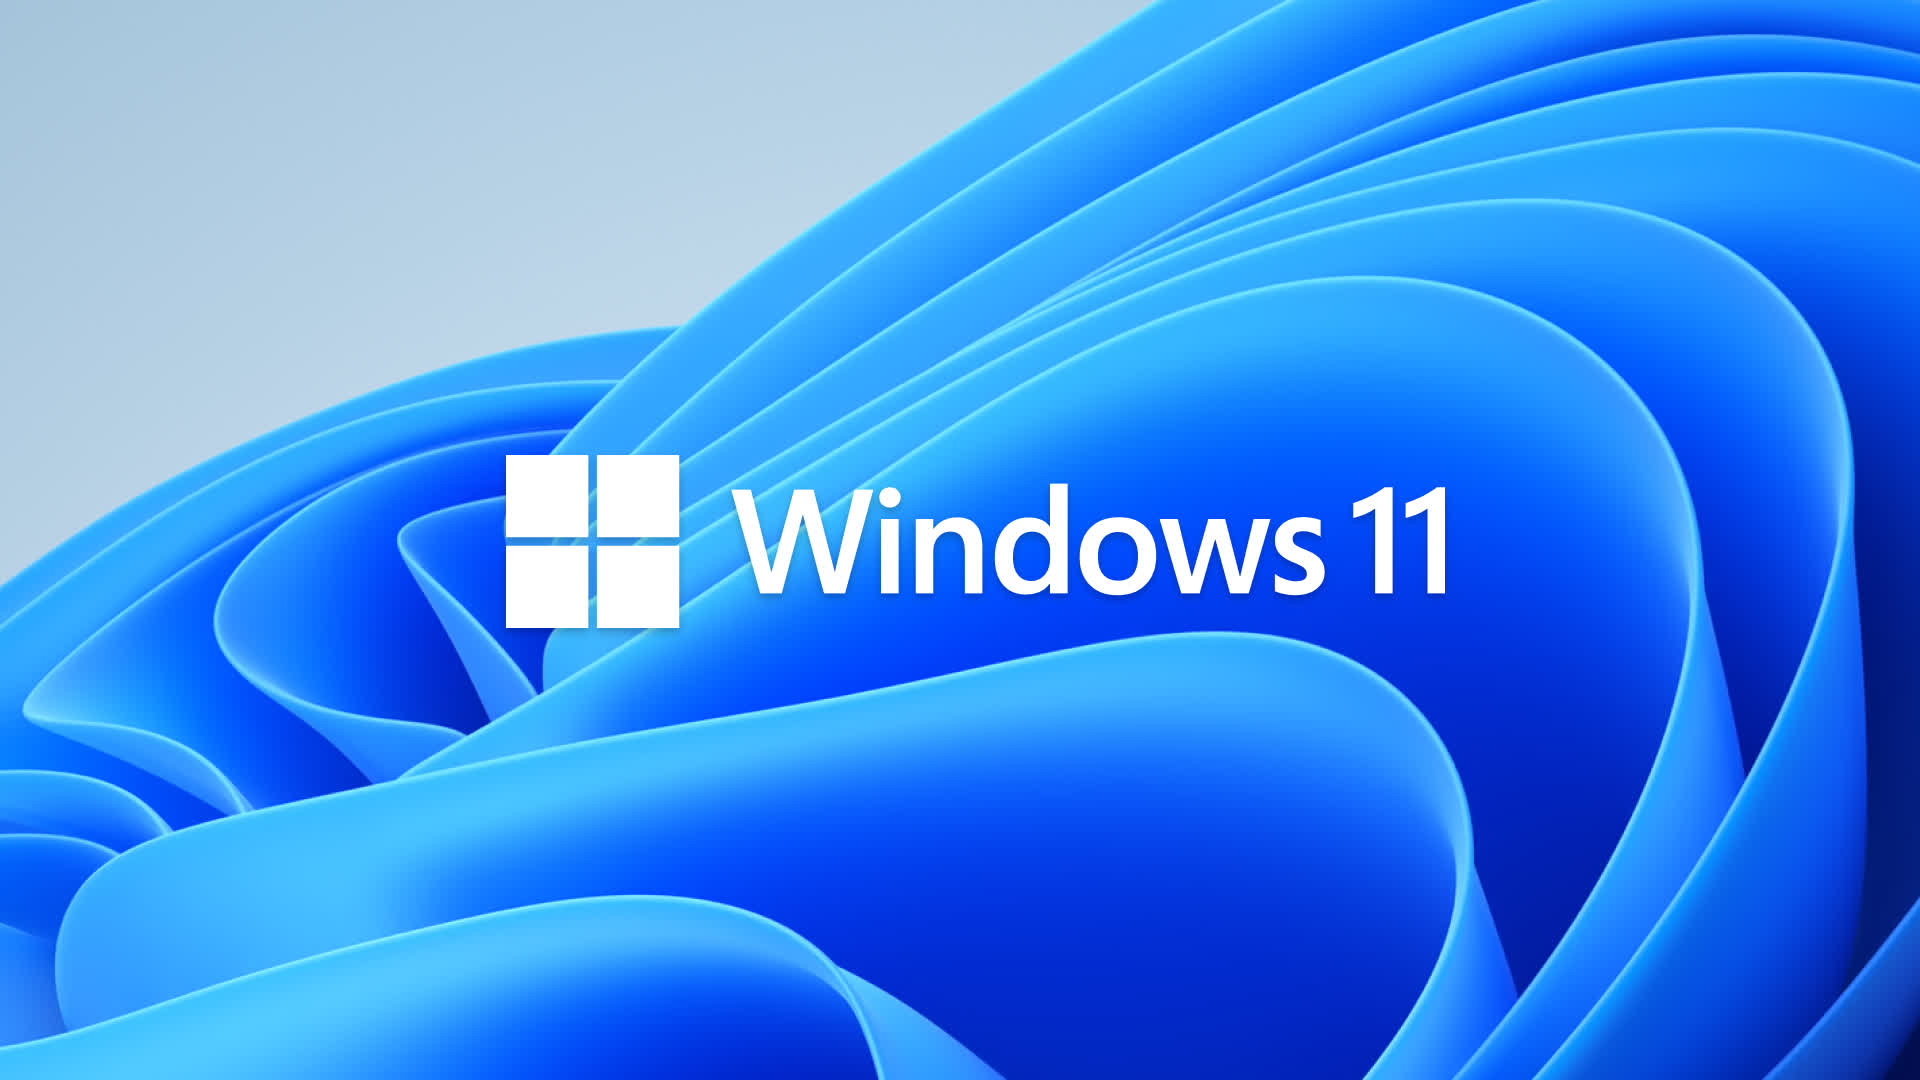 Over 60% of PC users don't know about Windows 11